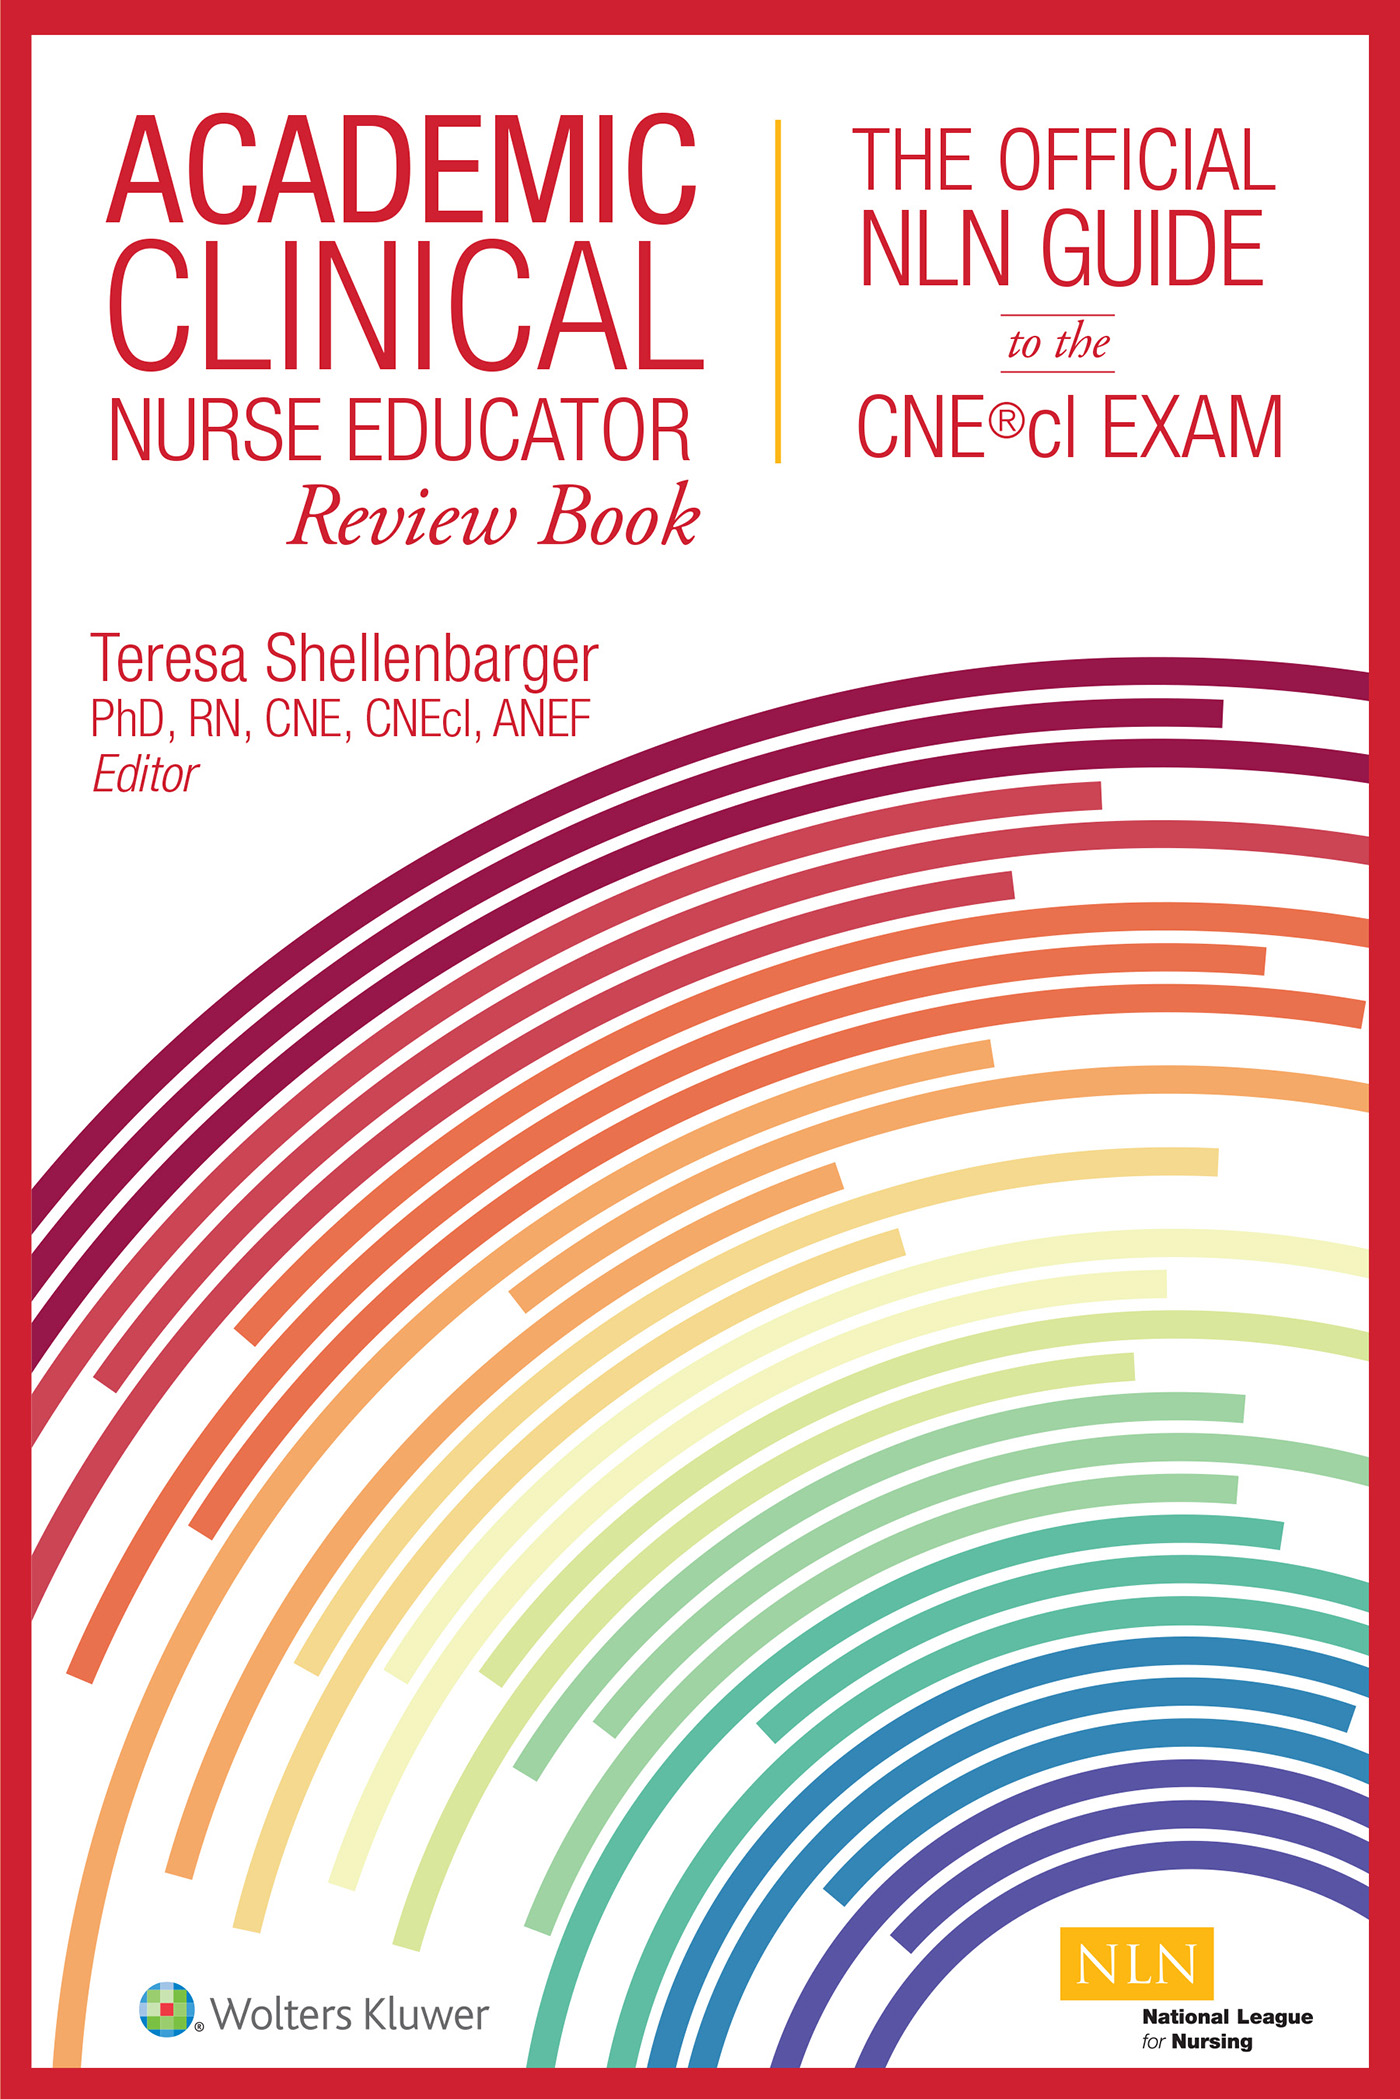 Academic Clinical Nurse Educator Review Book